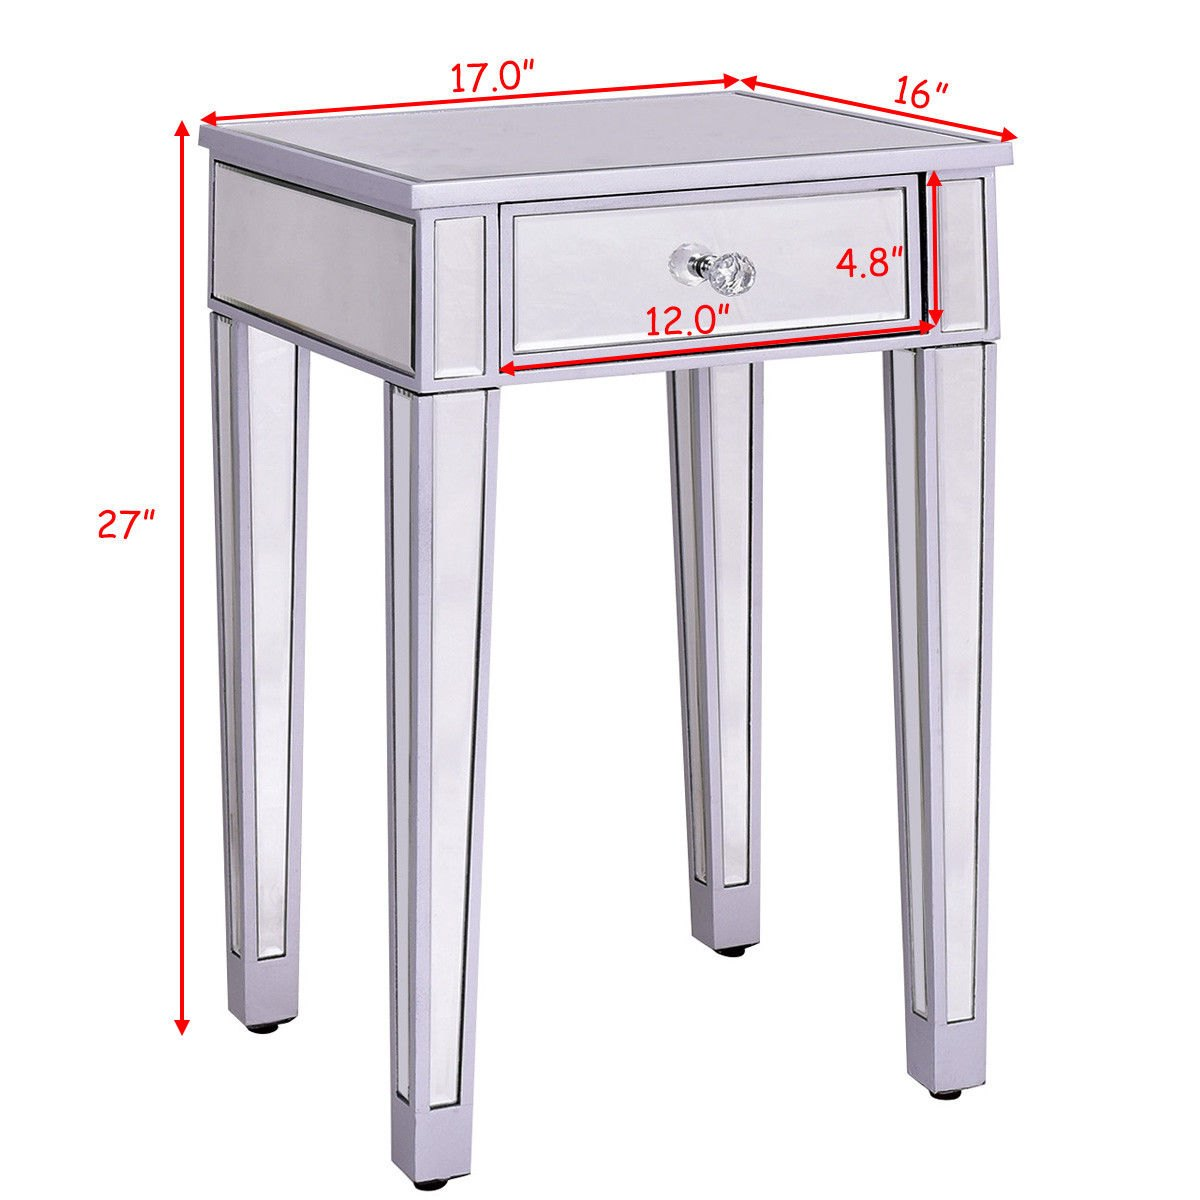 way mirrored accent table nightstand end bedside storage cabinet drawer seahorse lamp patio with small contemporary lamps concrete circular outdoor cover bargain furniture corner